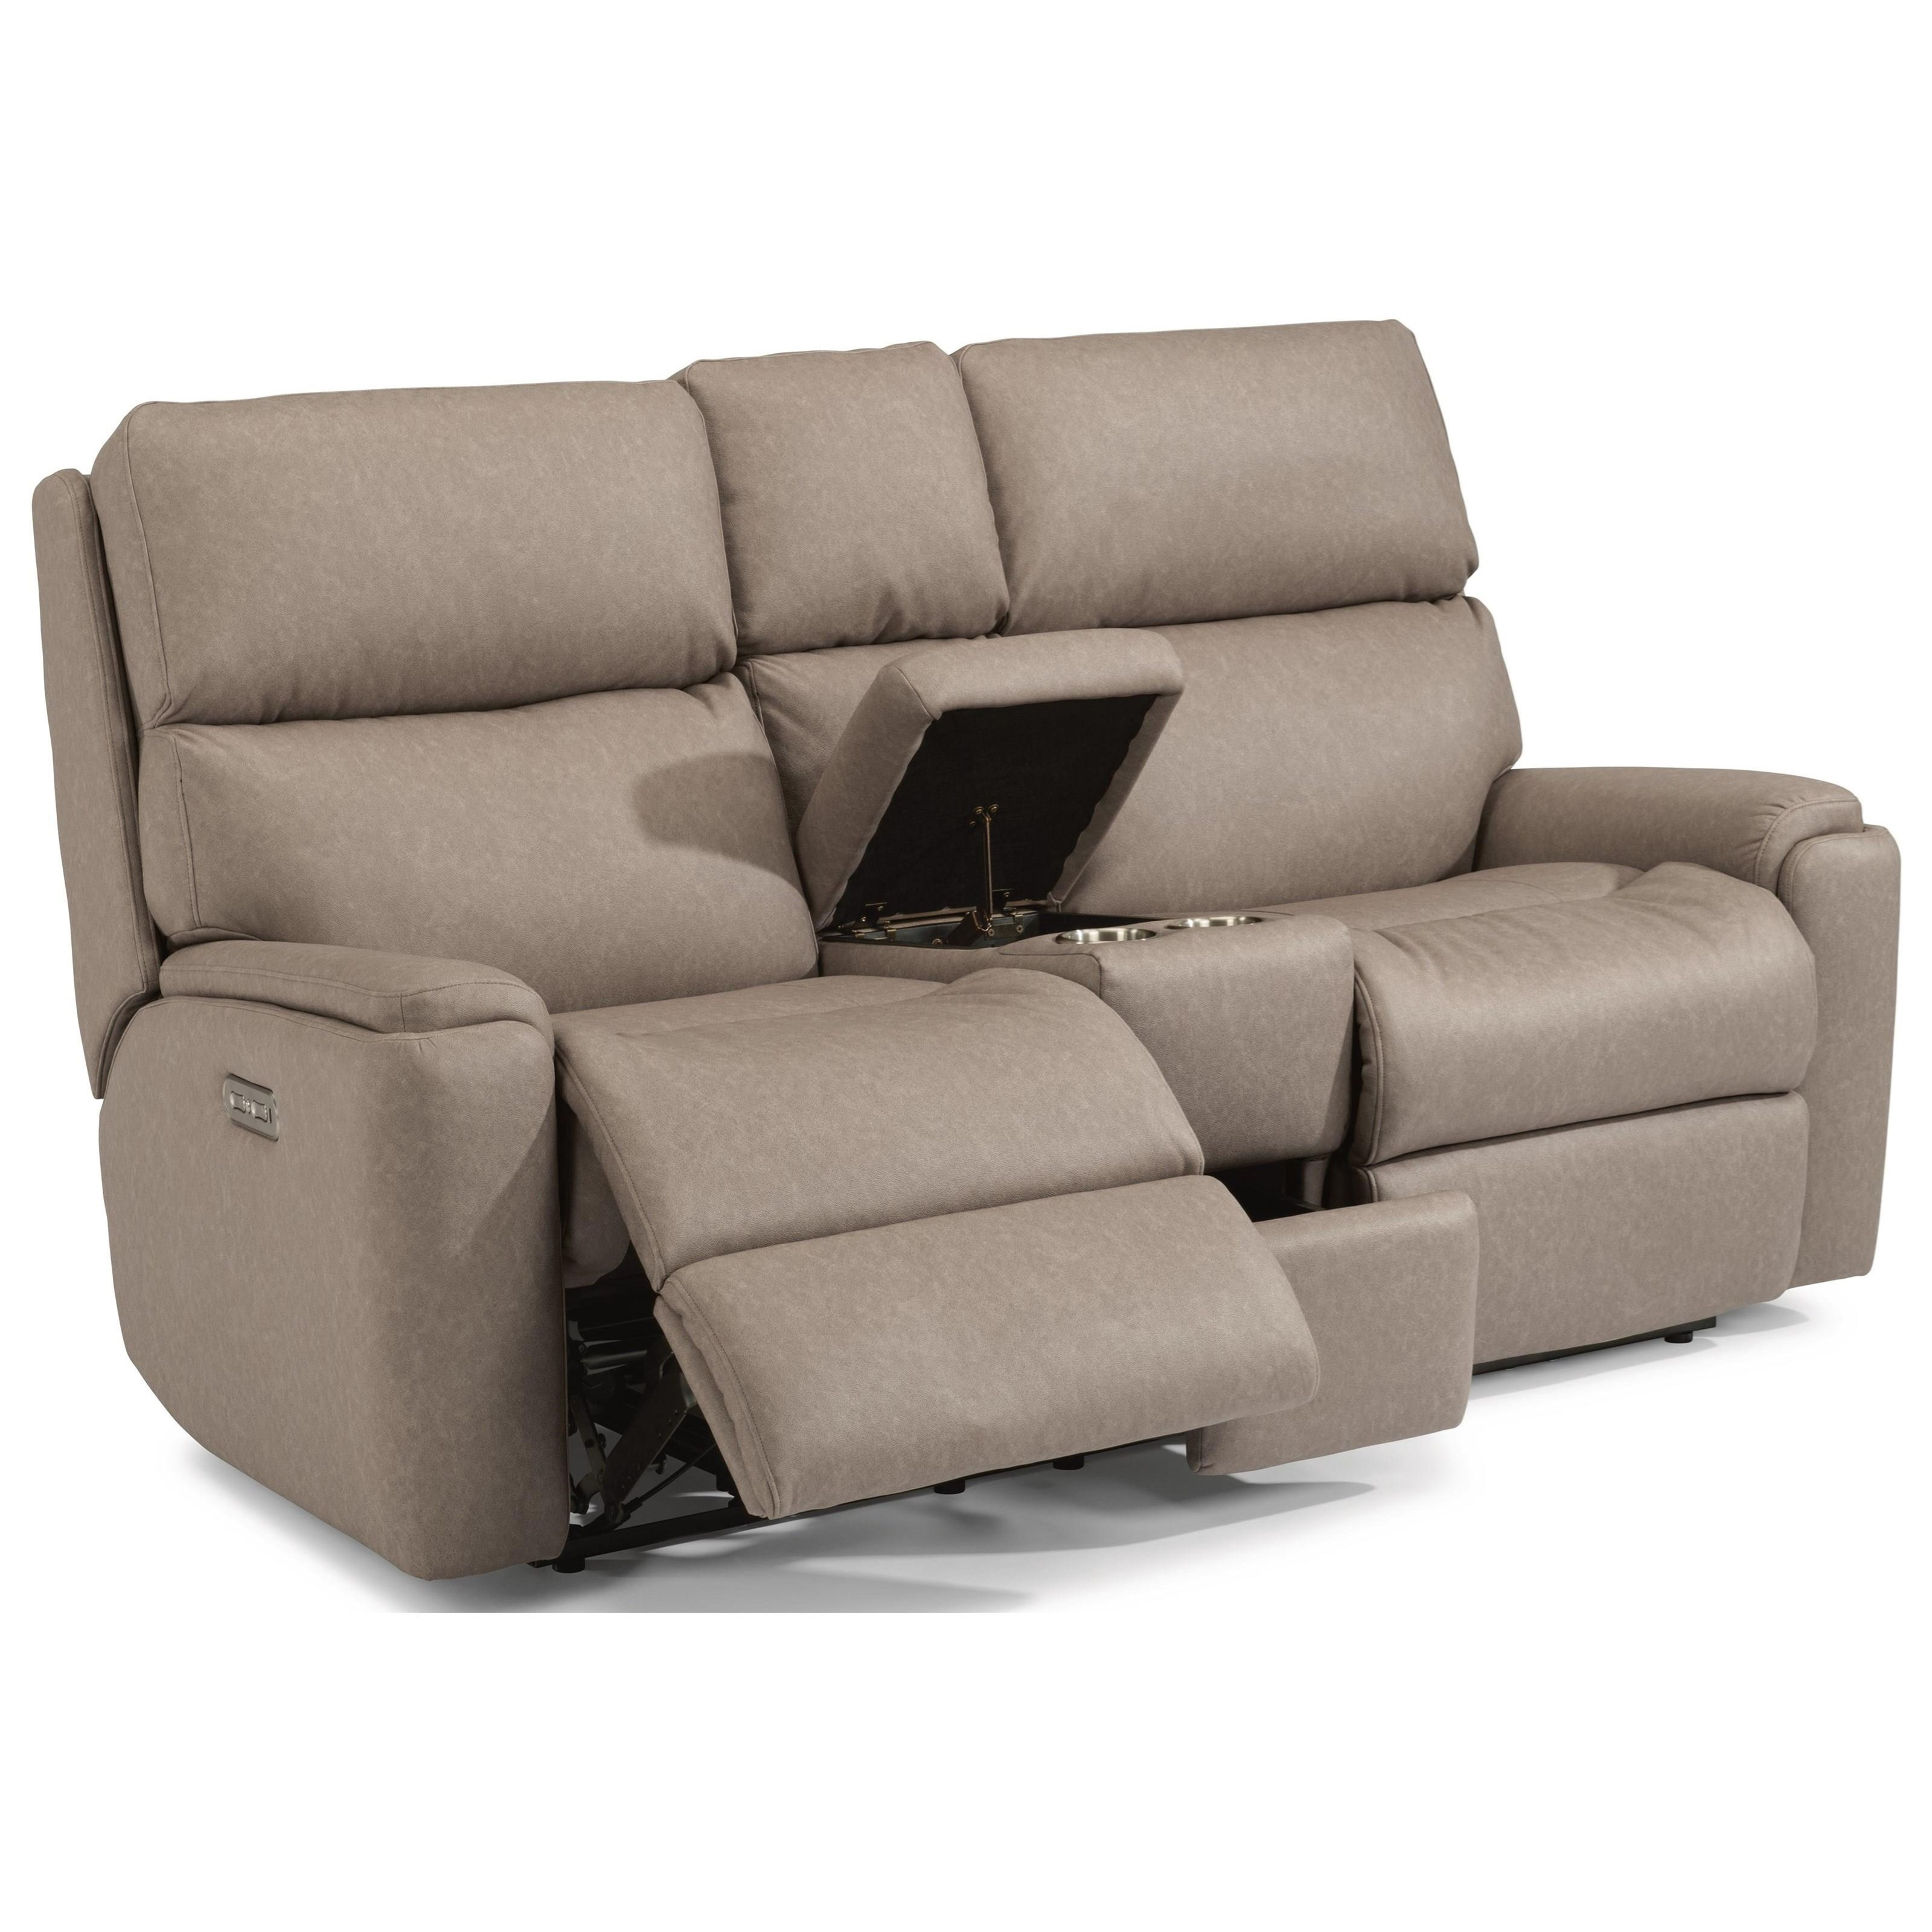 Rio Power Reclining Loveseat with Console and PH by Flexsteel at Walker's Furniture